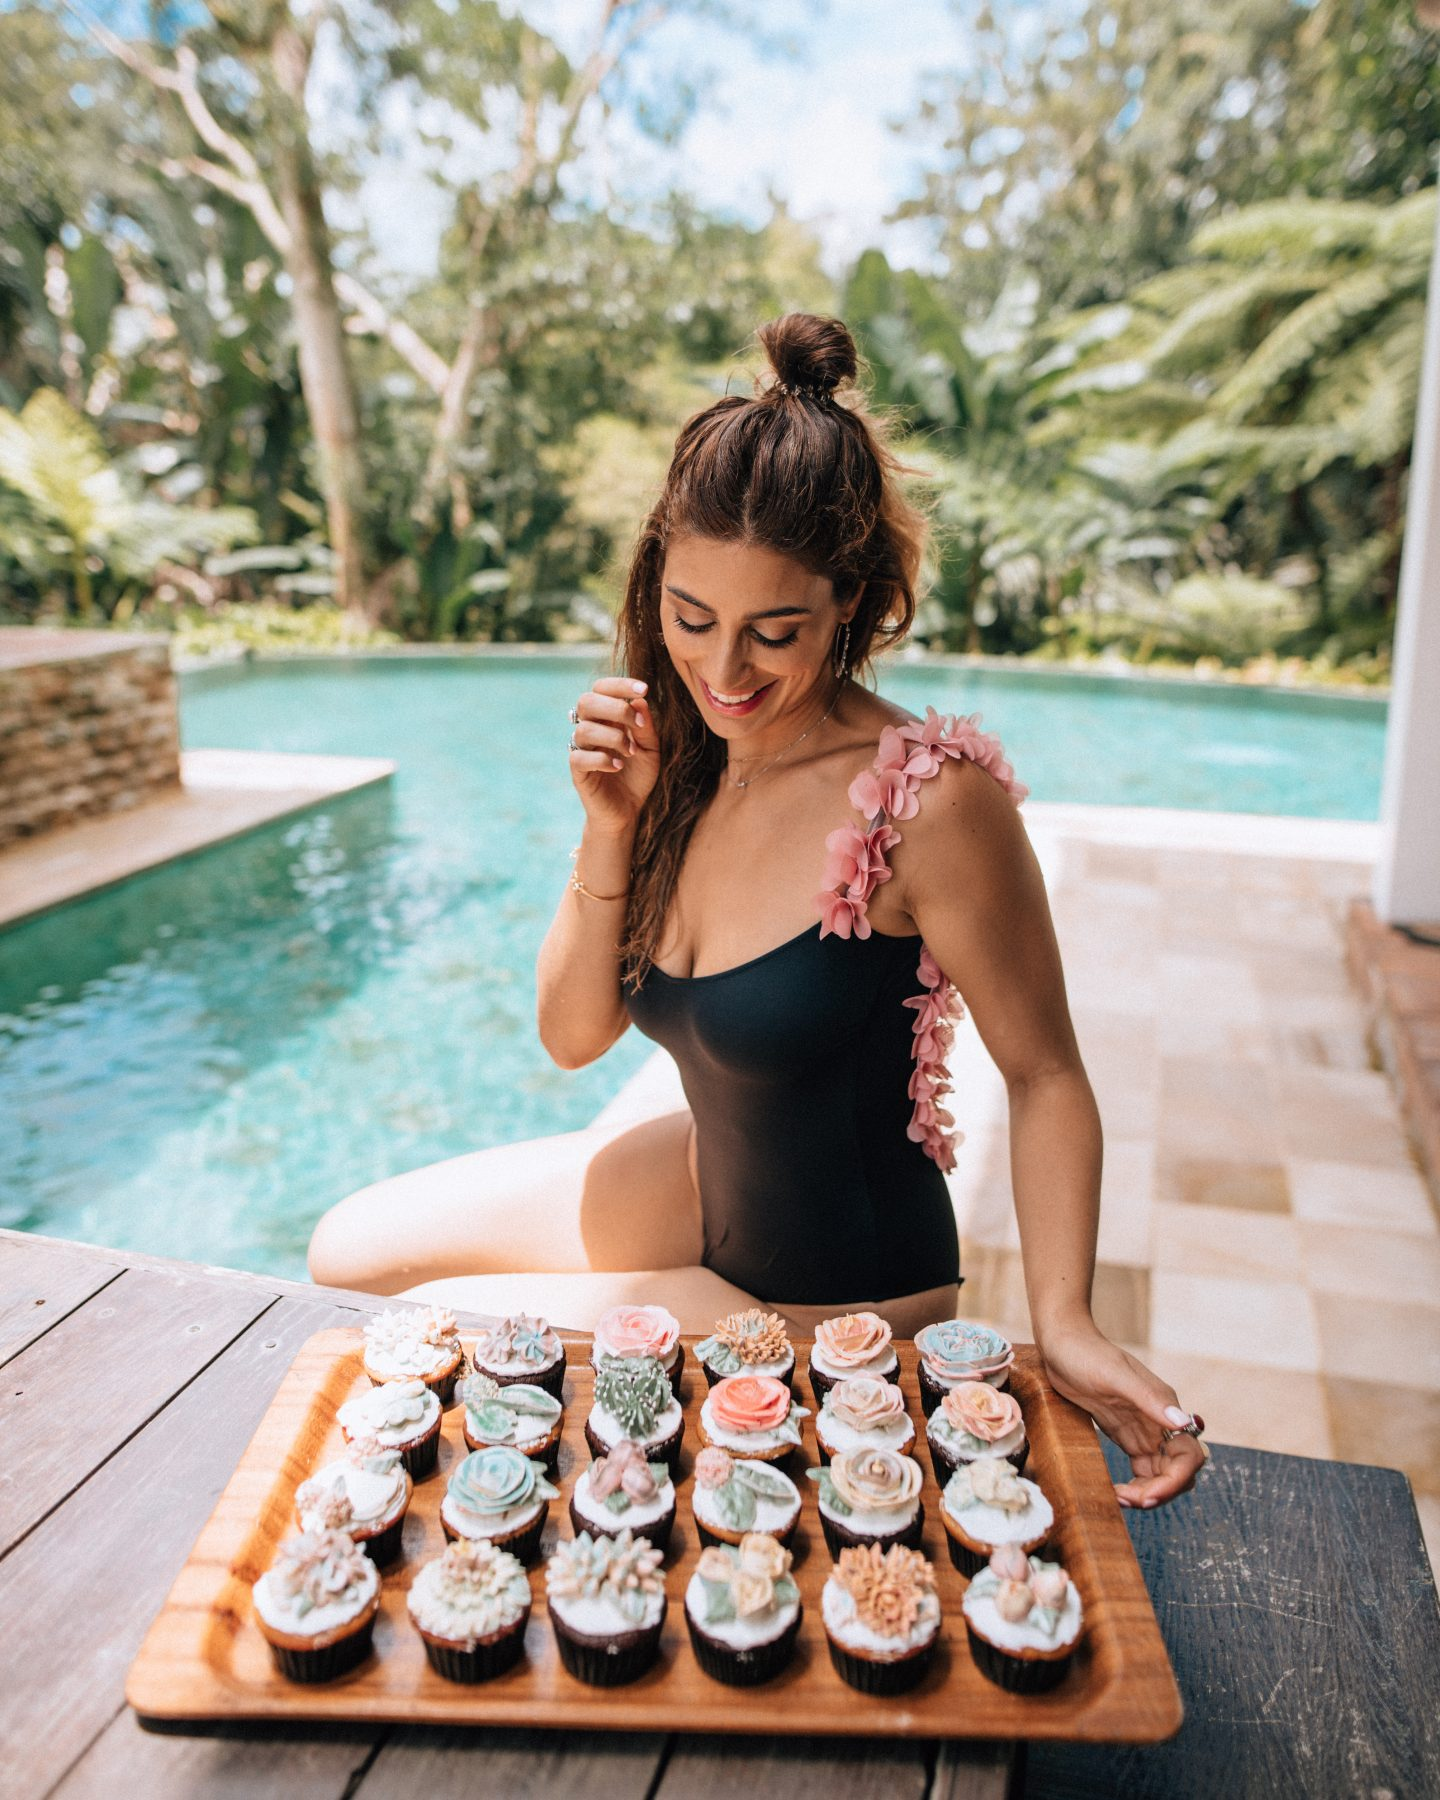 Woman looking at cupcakes near a pool at a villa in Bali